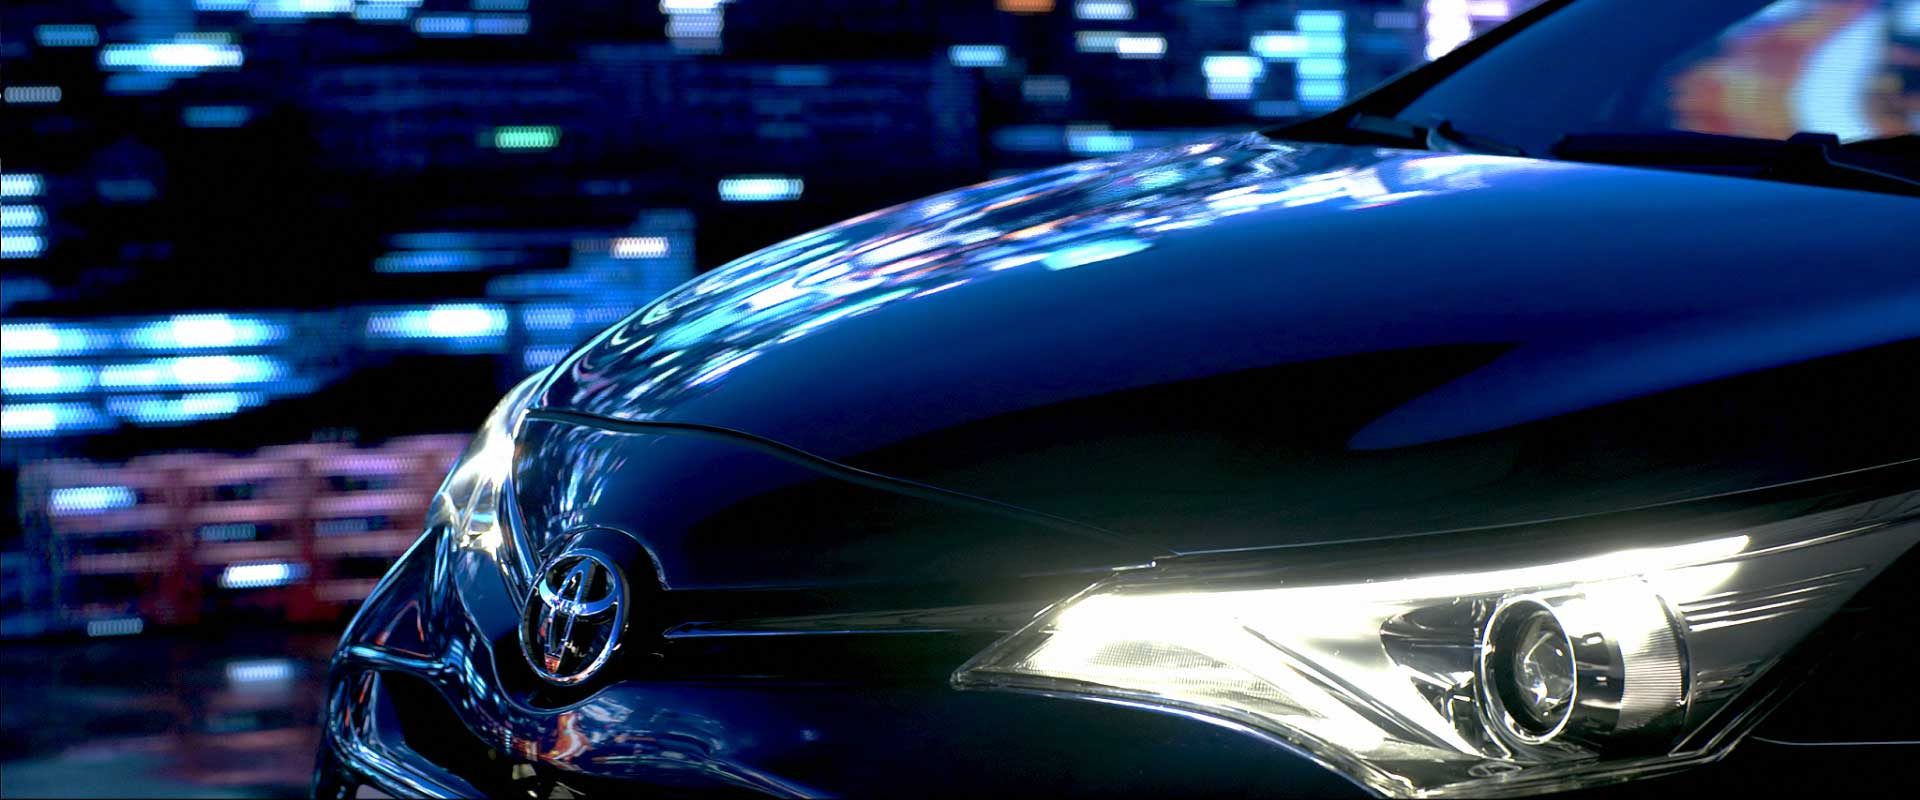 Frontview detail. Still from Toyota Avensis - Commercial